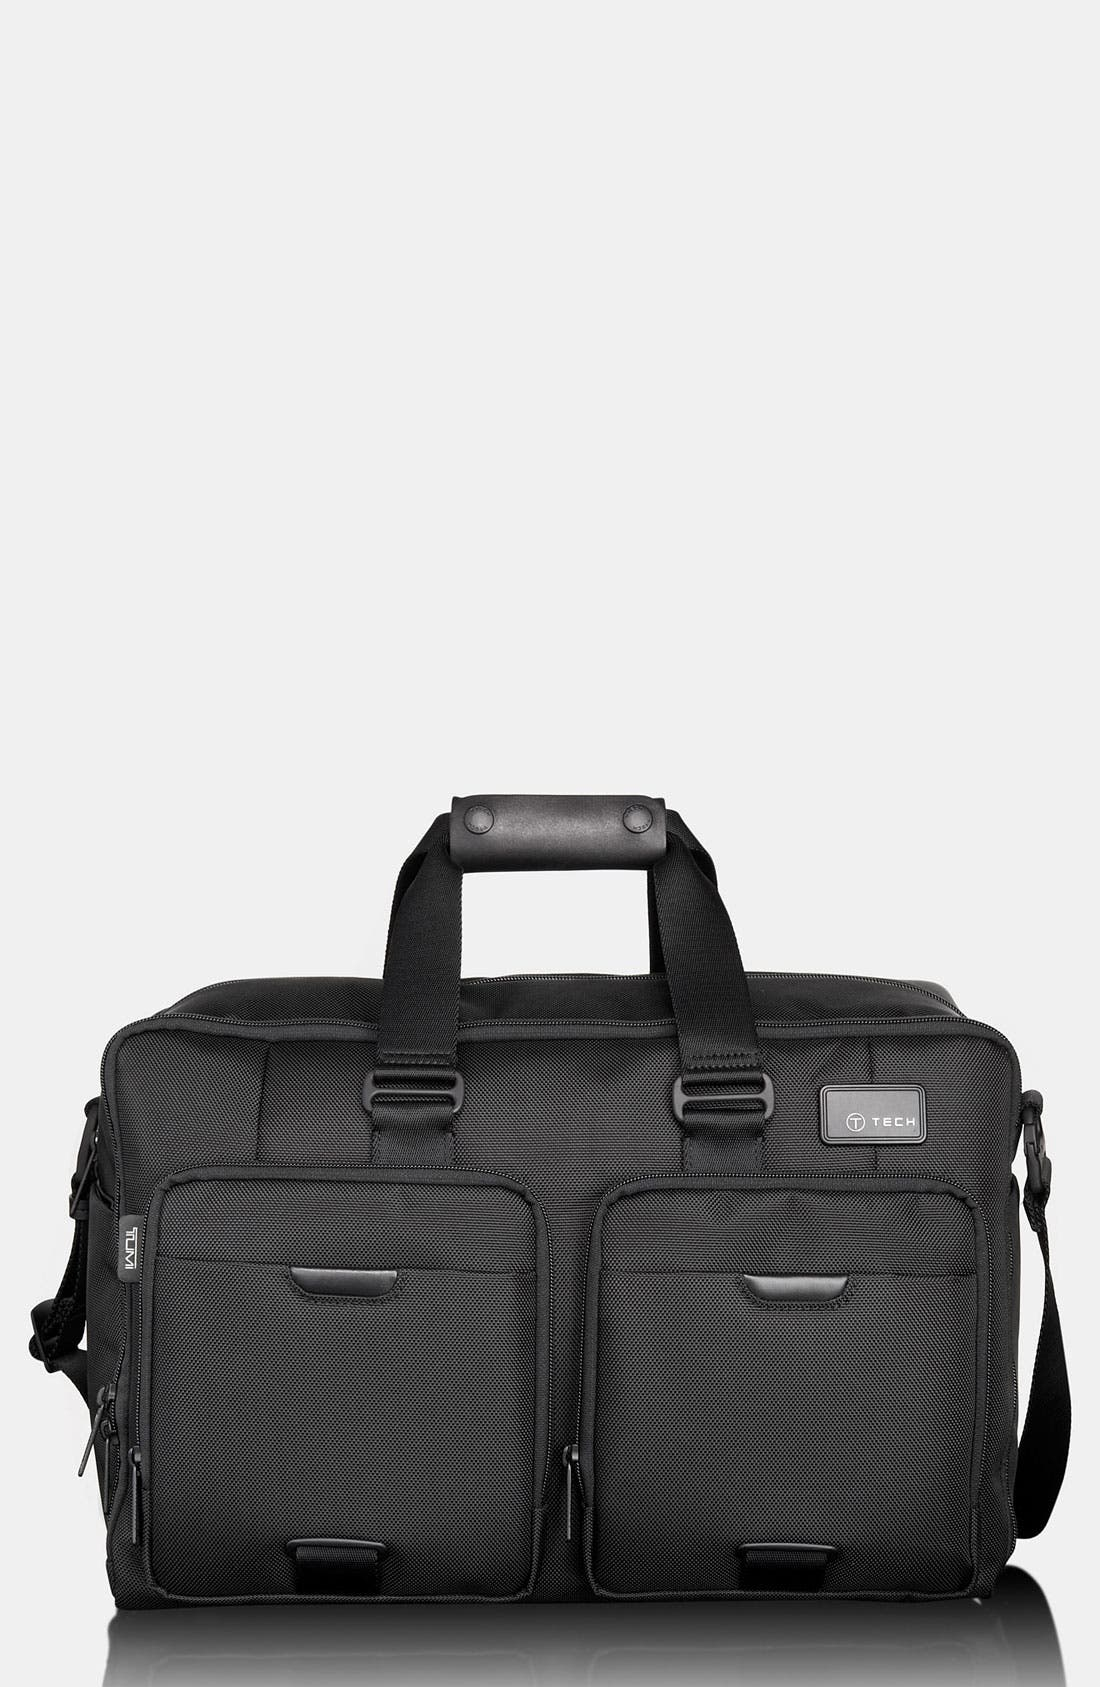 Alternate Image 1 Selected - Tumi 'T-Tech Network' Soft Carry-On